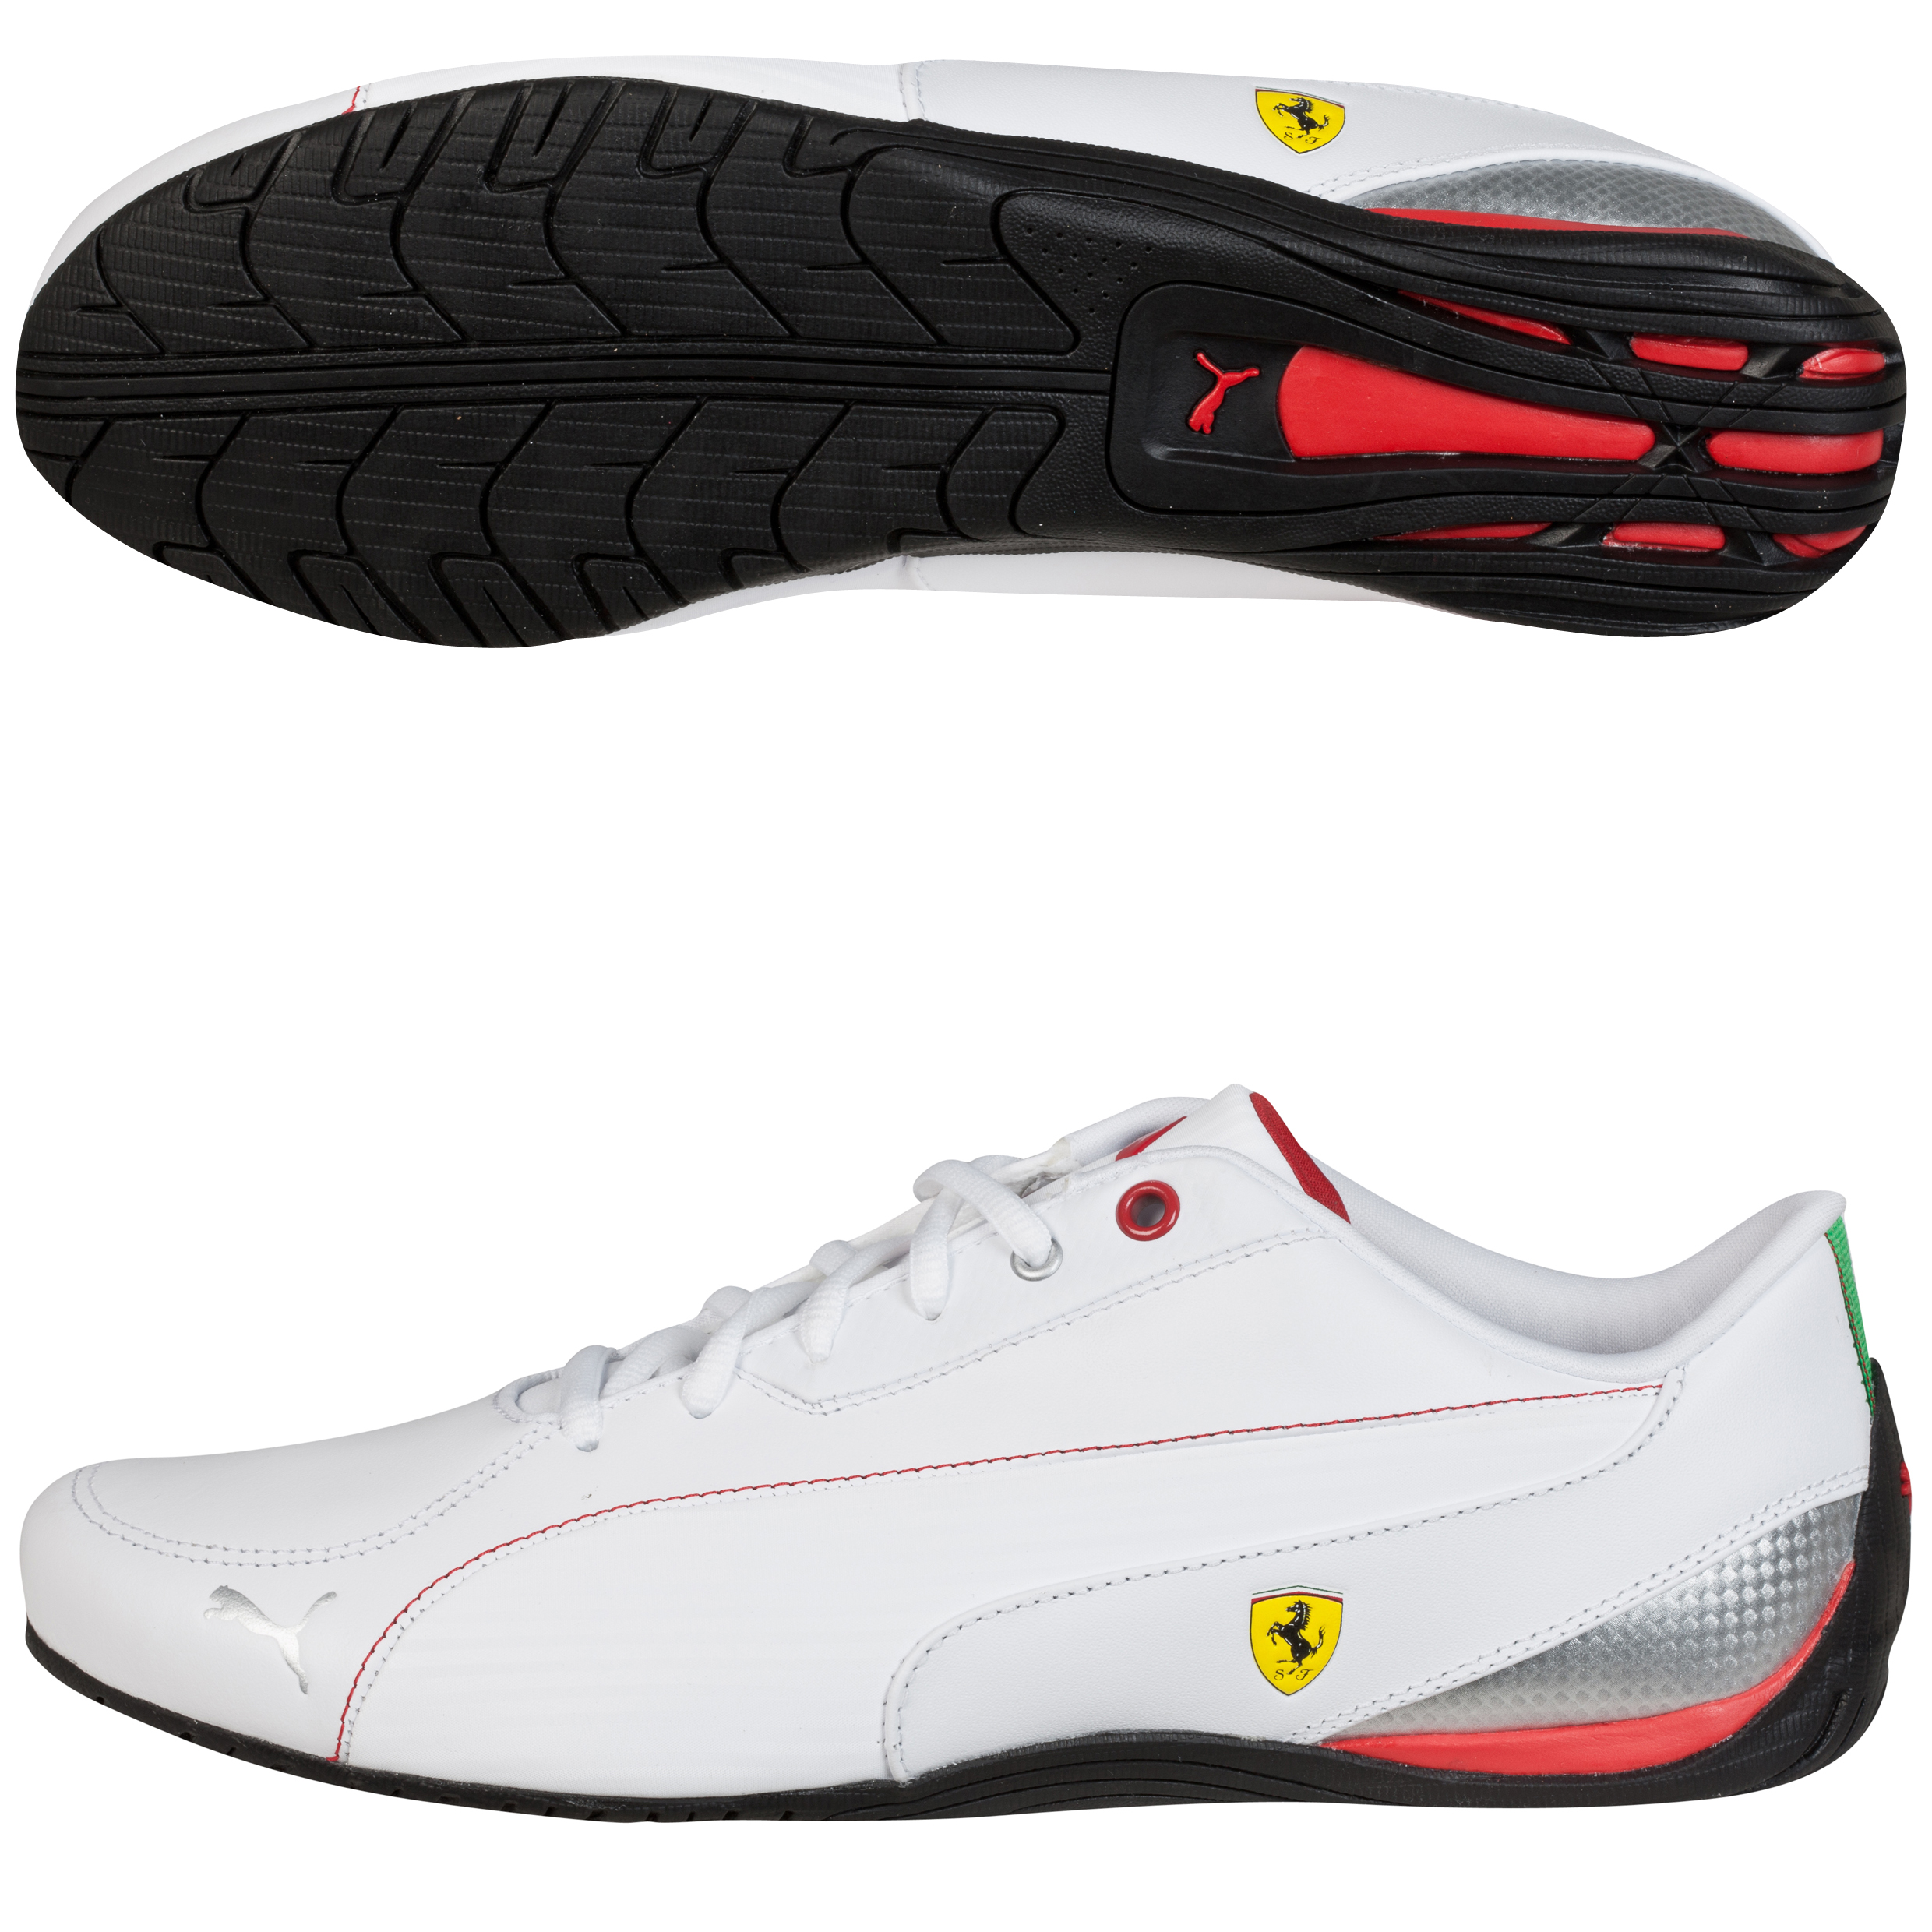 Scuderia Ferrari Drift Cat 5 White